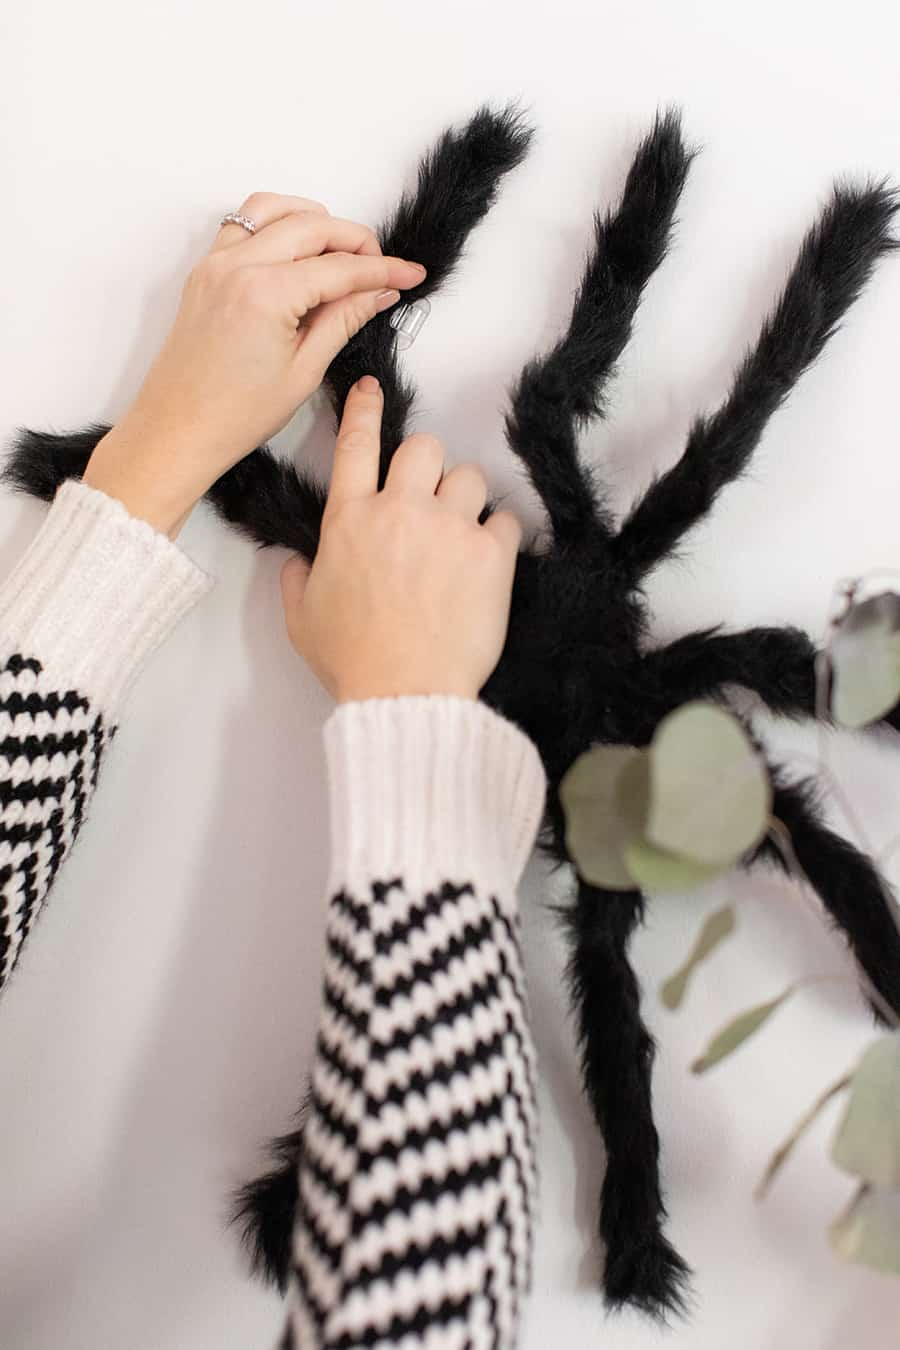 Decorating the house with Halloween spiders